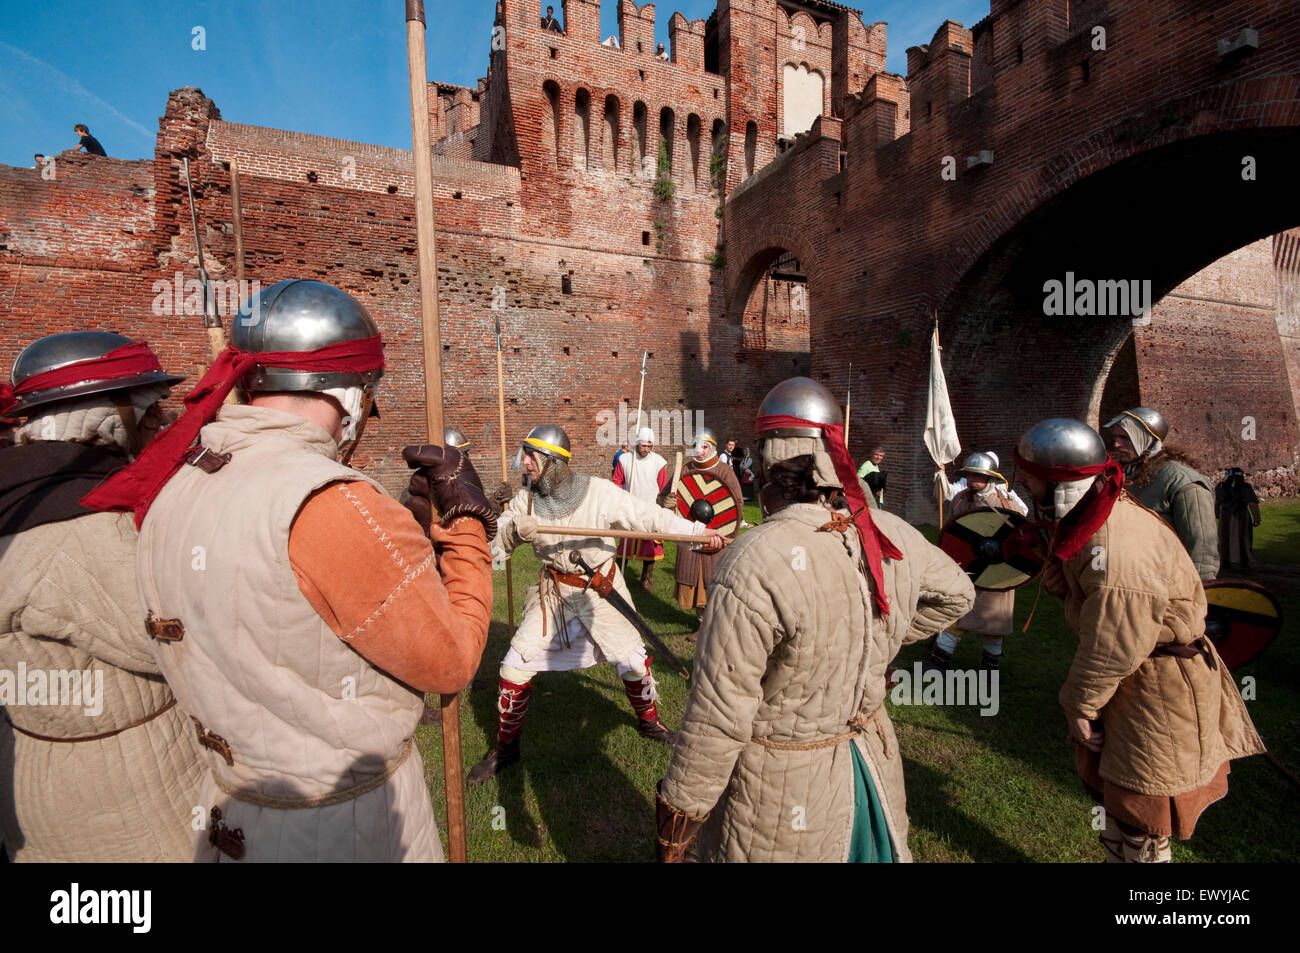 Italy, Lombardy, Soncino, Rocca Sforzesca, Castle, Historical Reenactment, Medieval Soldier - Stock Image